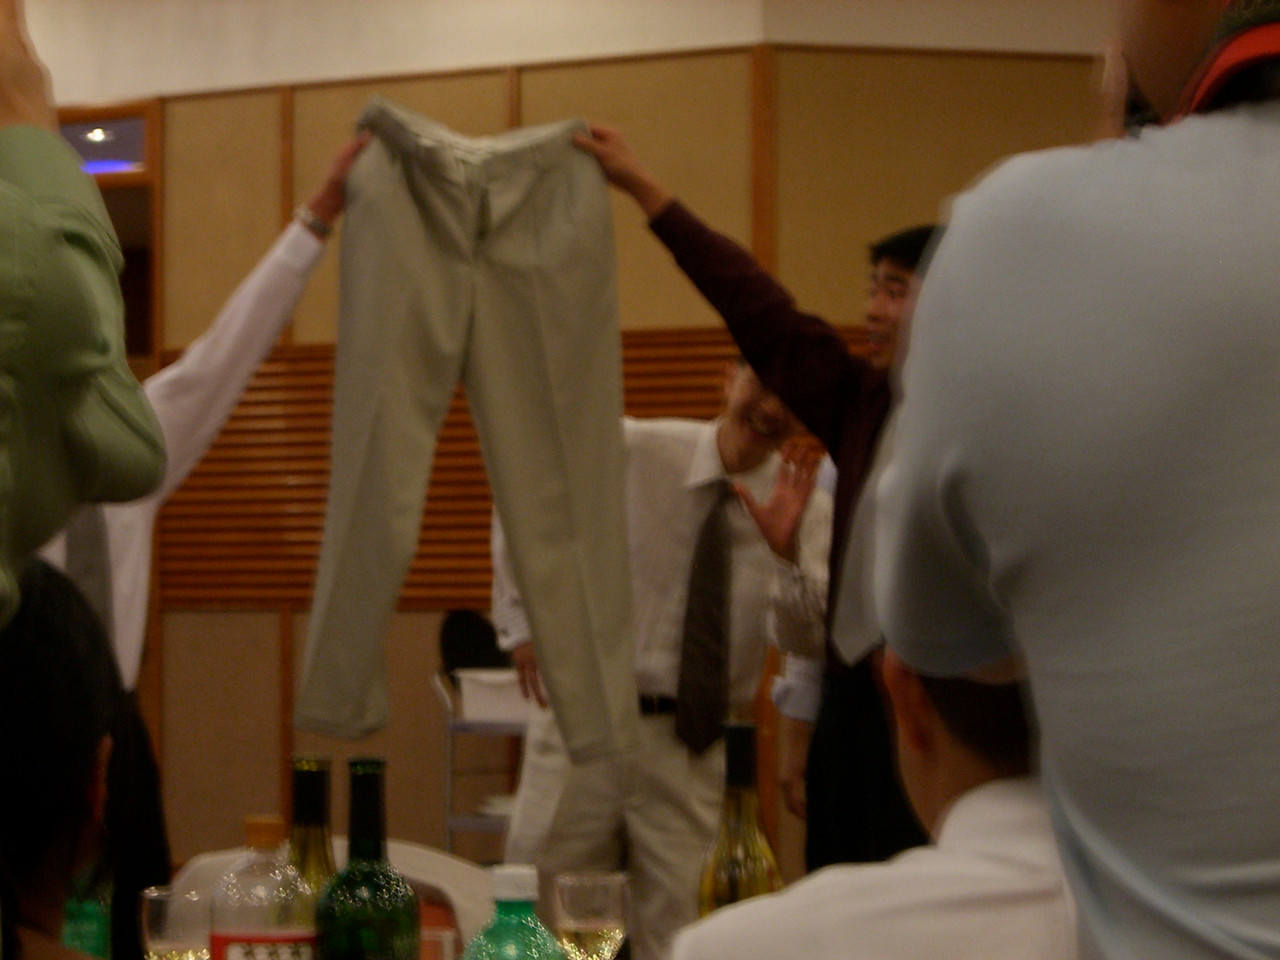 2006 06 23 Fri - Rehearsal Dinner - Poon about to walk under Reuben's pants